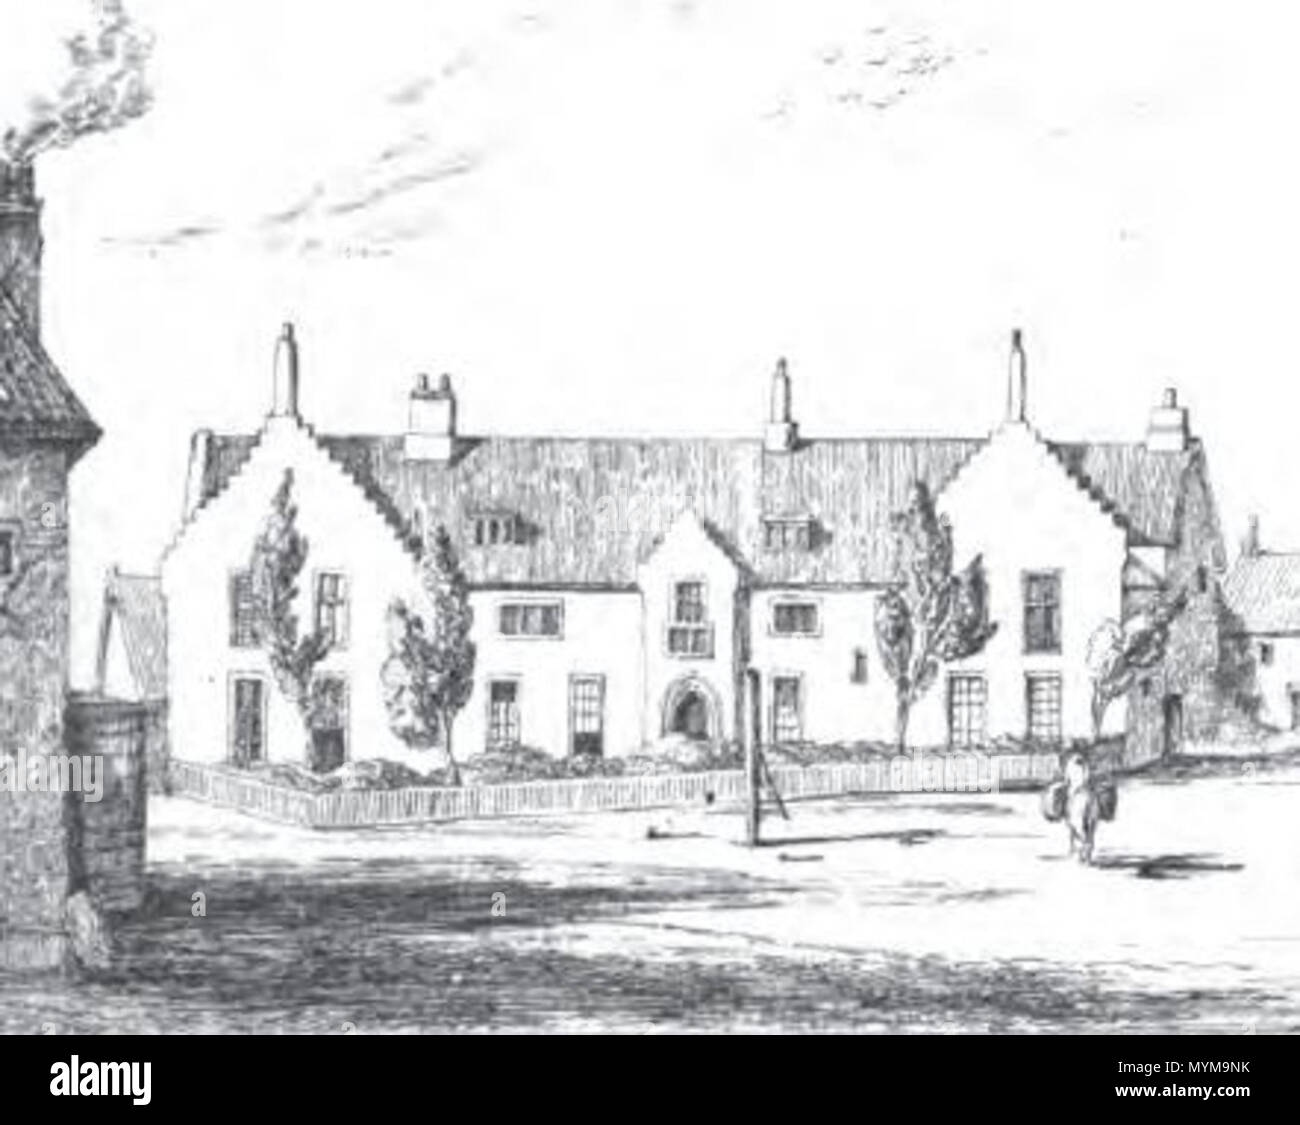 . English: Illustration of Gresham's School, Holt, from John William Burgon's The Life and Times of Sir Thomas Gresham (1839) 'from a sketch made on the spot in 1838' (detail). 1839 engraving from a sketch dated 1838. Unknown 397 Old School House, Holt, 1838 - Stock Image